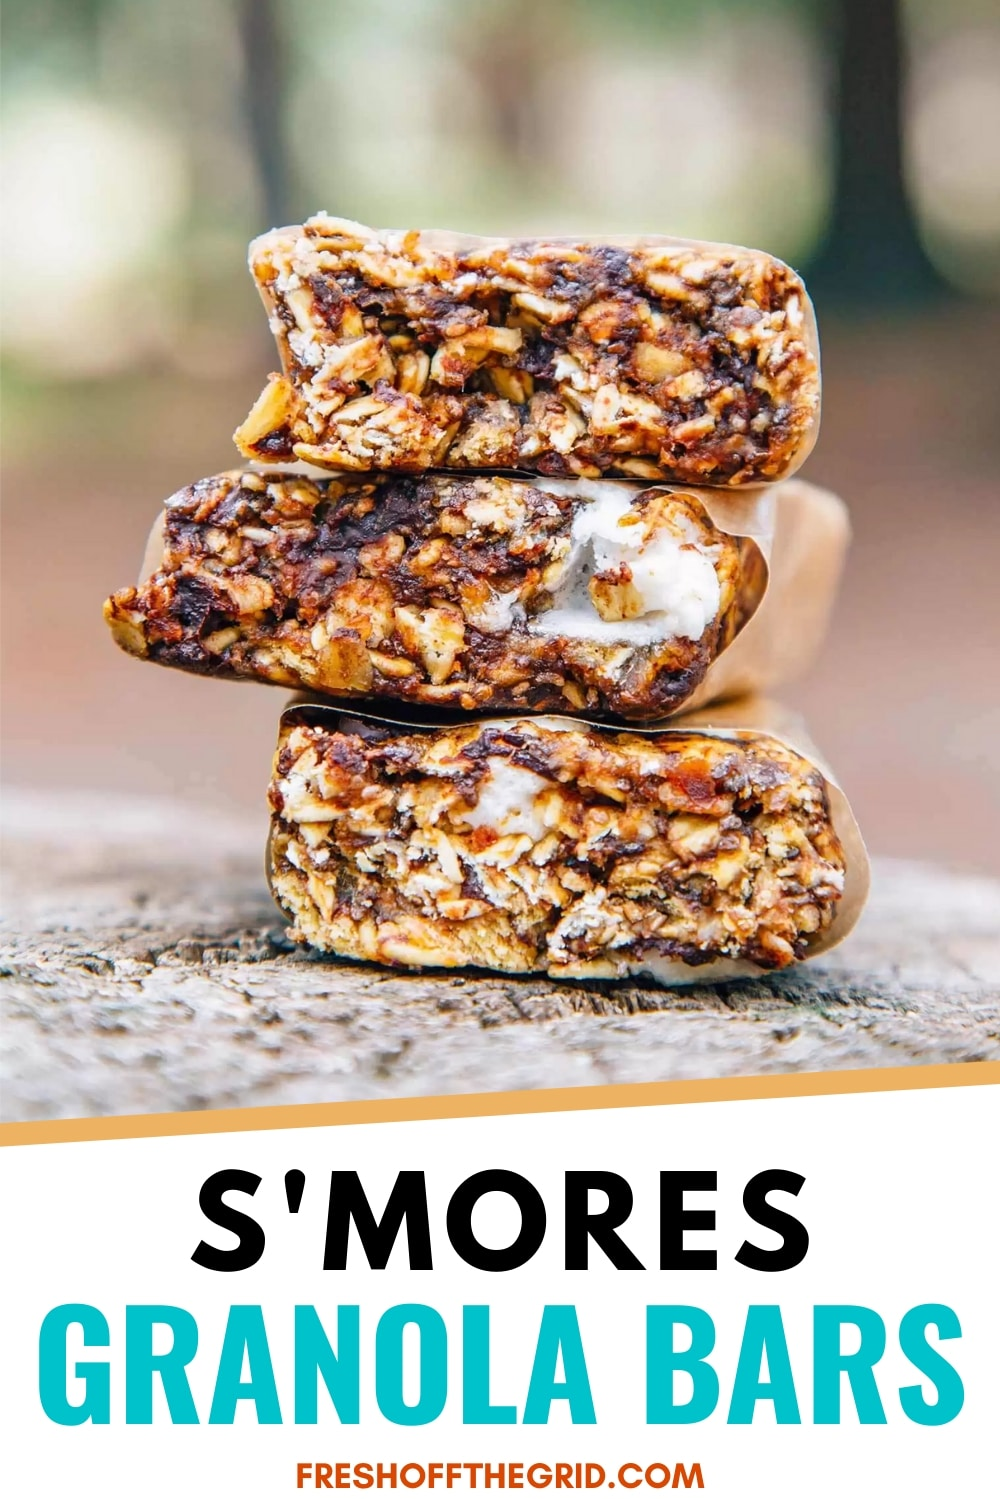 These S'mores Granola Bars are such a fun camping and hiking snack! via @freshoffthegrid